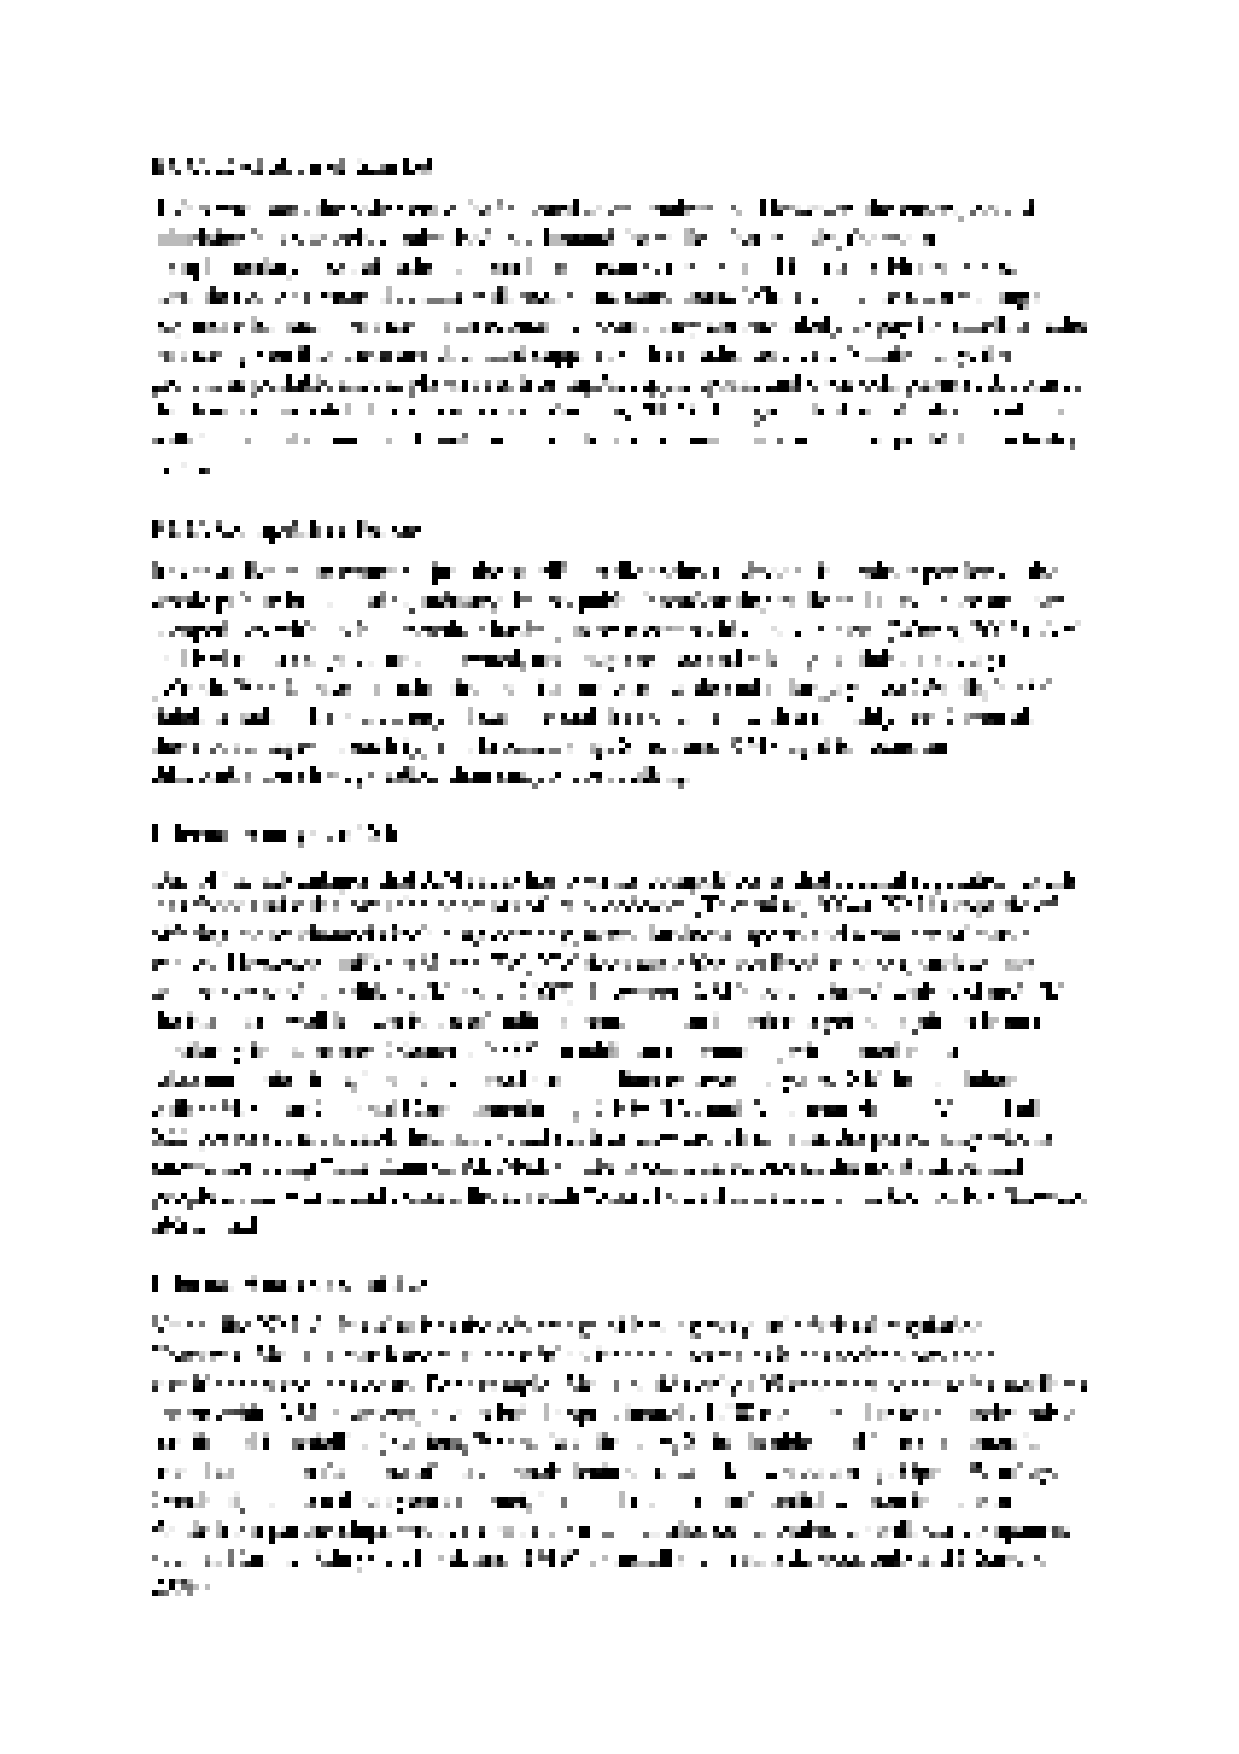 sirius xm strategic analysis capstone project proposal essay Xm sirius radio xm radio view full essay  in the final analysis it is a sad truth that such radical disparities should exist in one of the most advanced.